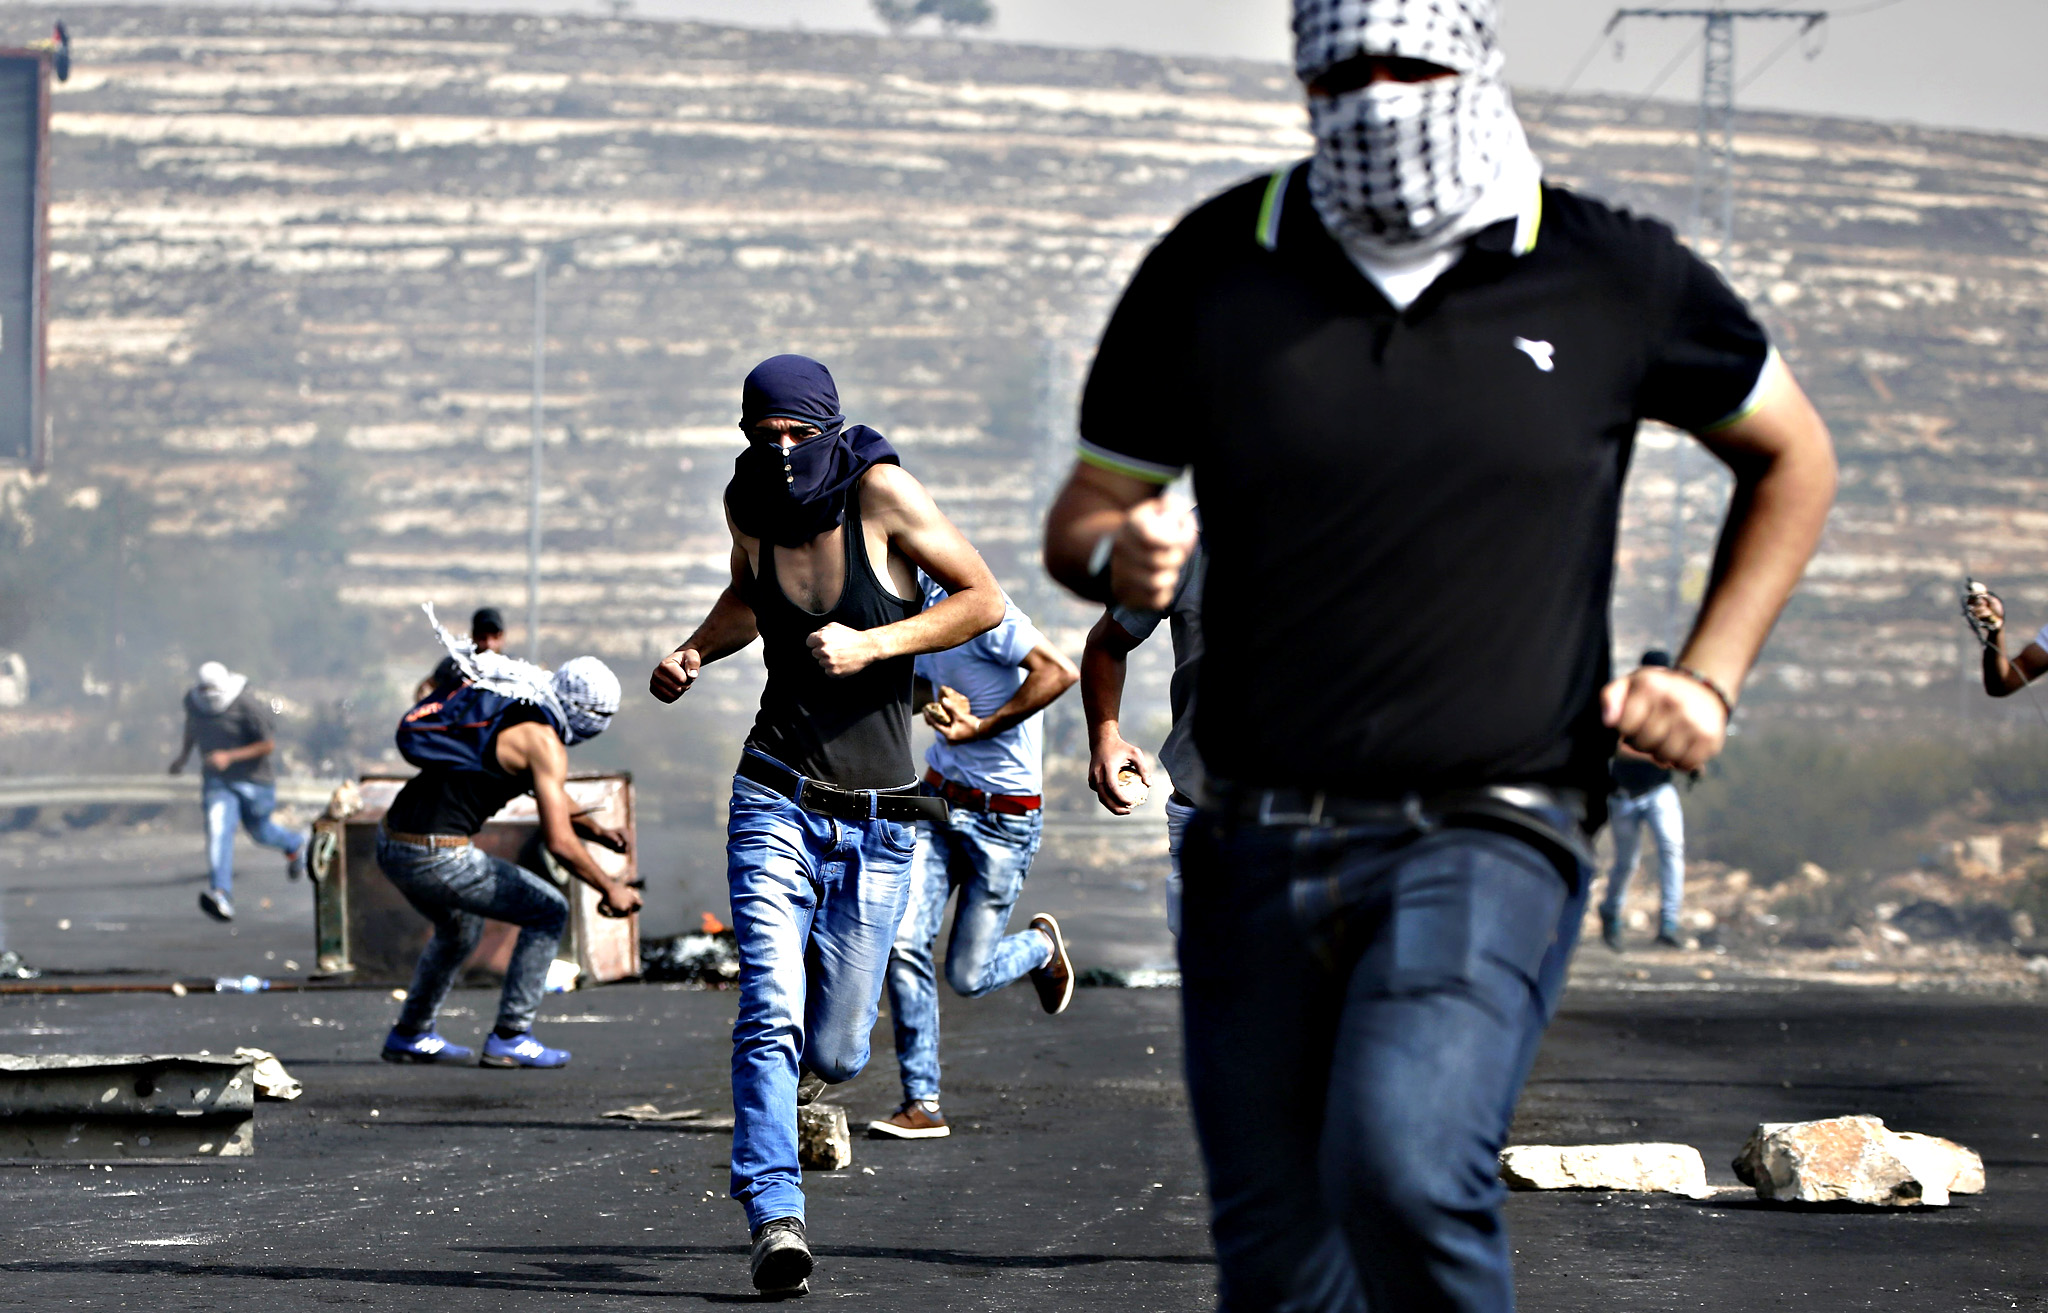 "Palestinian protestors take cover during clashes with Israeli security forces near the Jewish settlement of Beit El, just north of the West Bank city of Ramallah, on October 12, 2015. Palestinian foreign minister Riad al-Malki accused Israel of seeking to spark ""a third intifada"", as violence again flared in Jerusalem, the West Bank and the Gaza Strip."